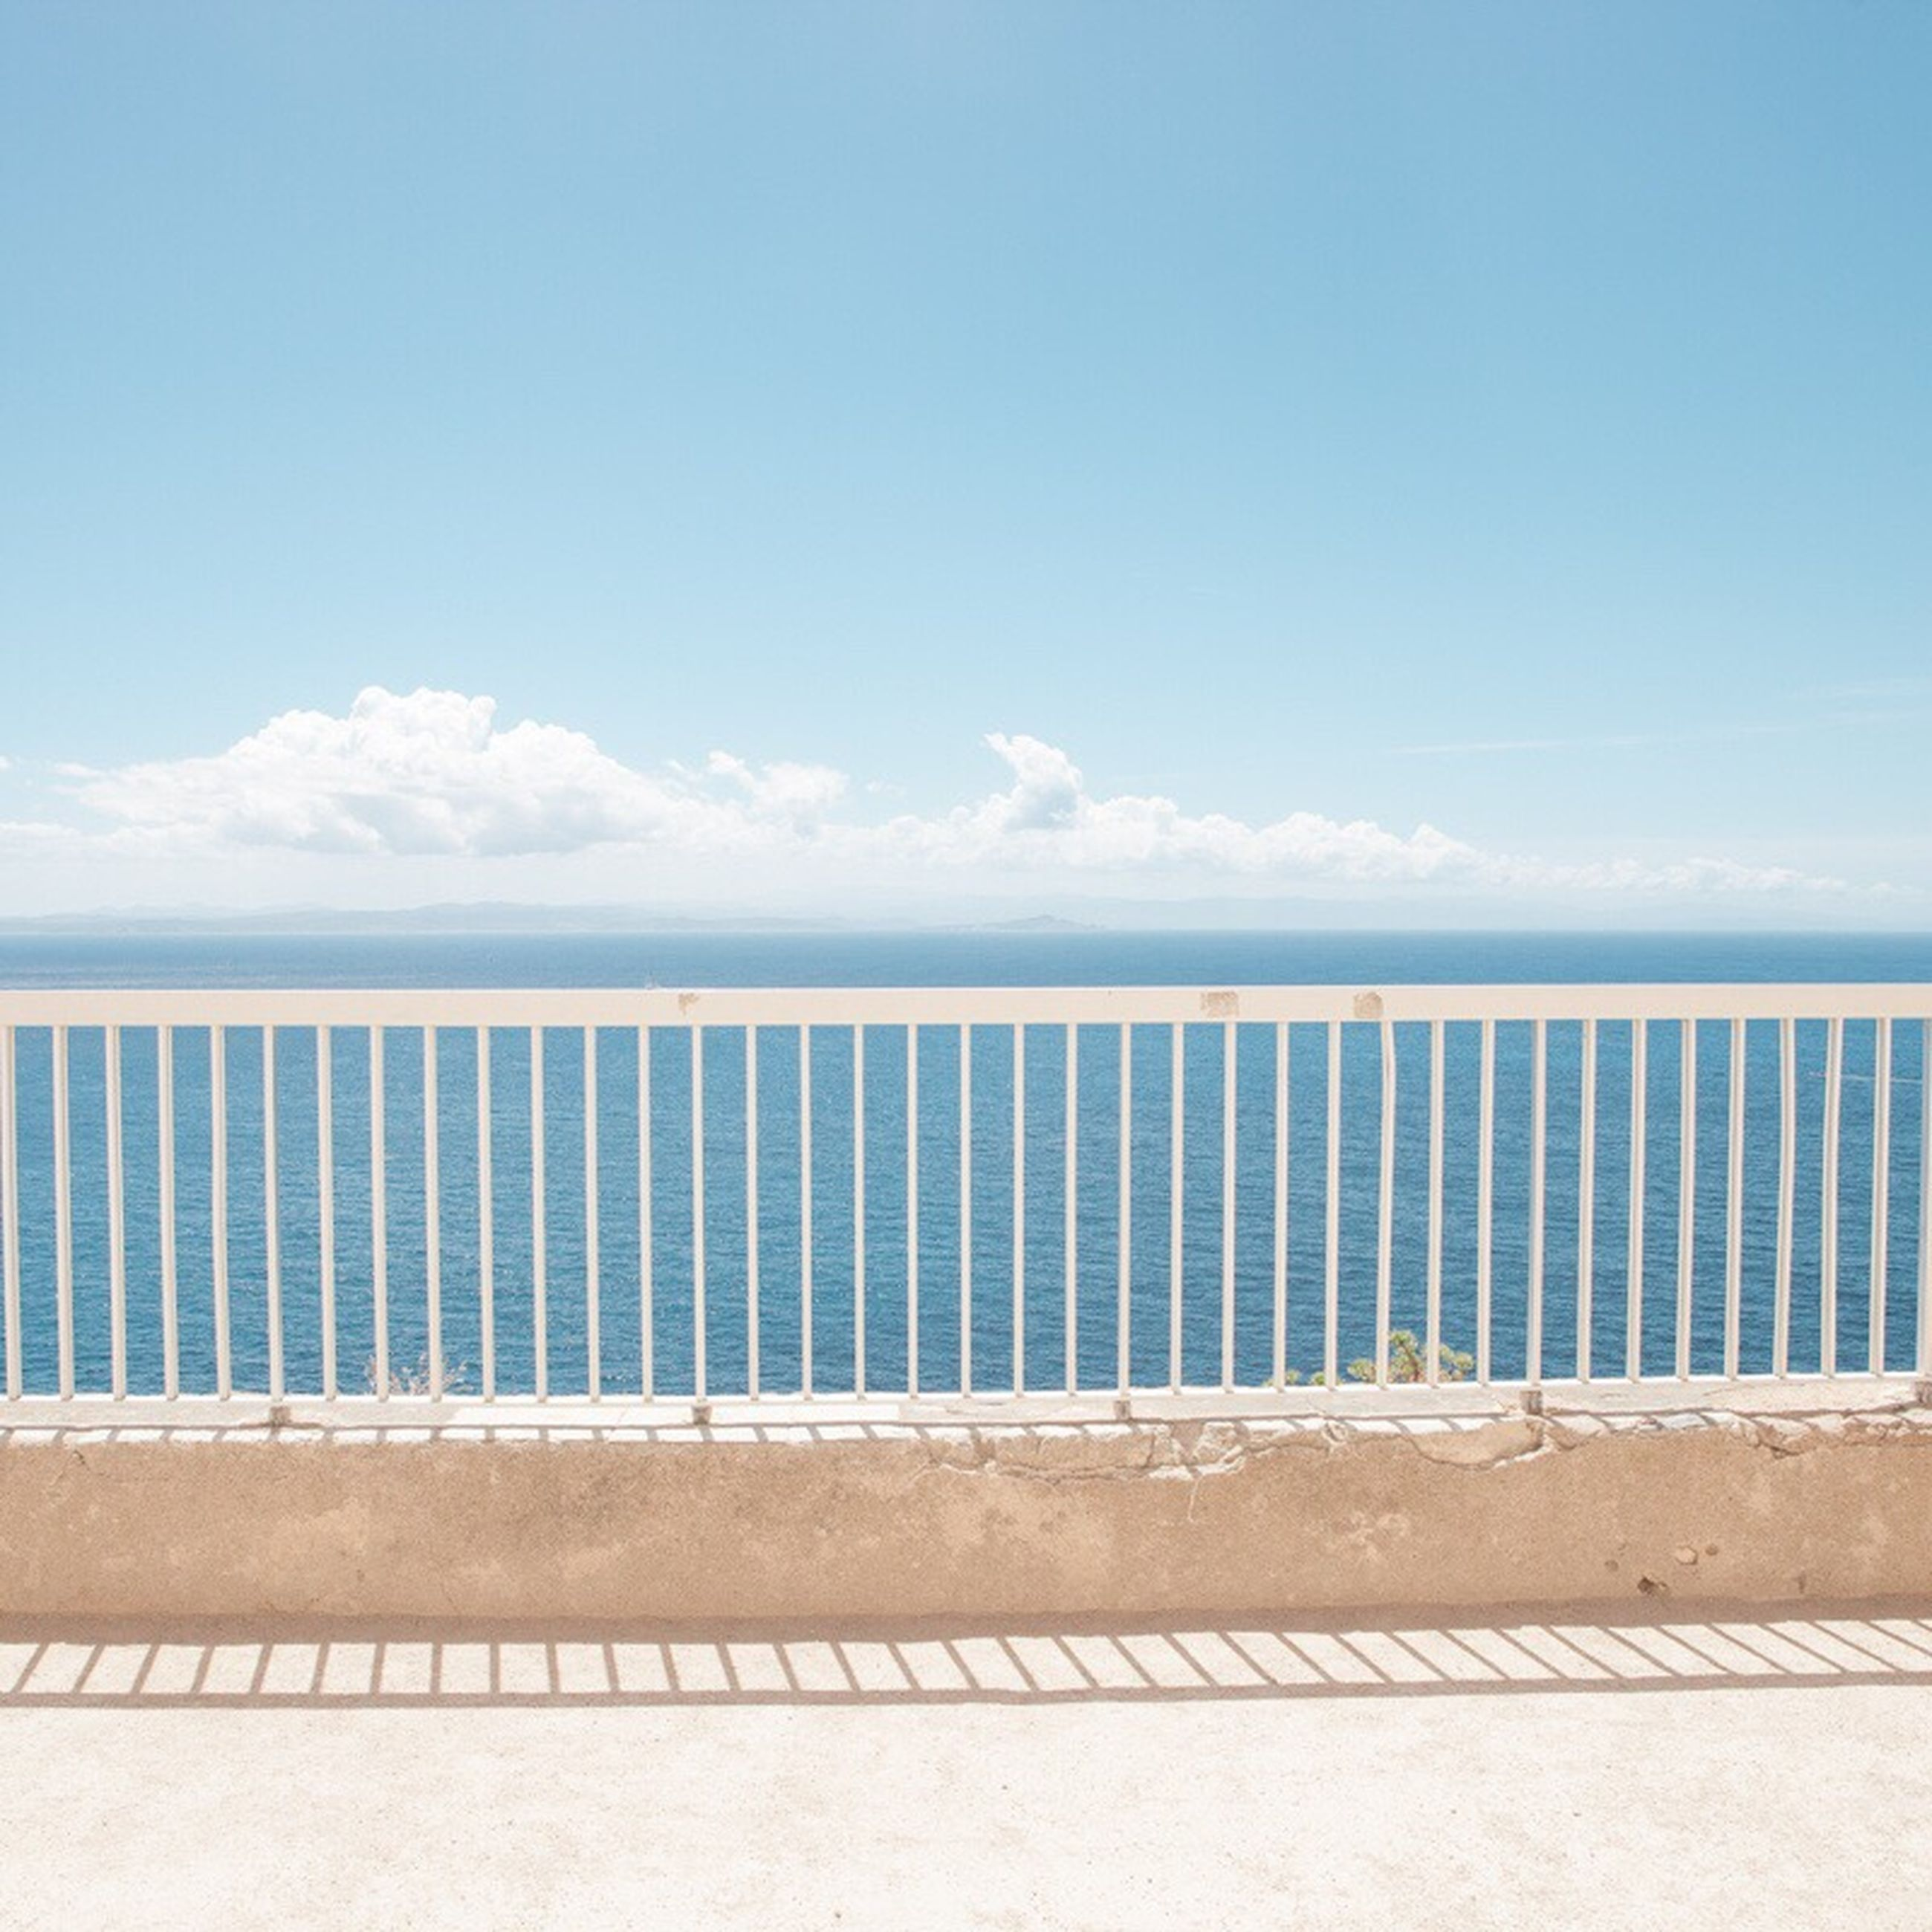 sea, beach, sand, blue, horizon over water, tranquility, water, tranquil scene, sky, nature, outdoors, day, beauty in nature, no people, scenics, wheelchair access